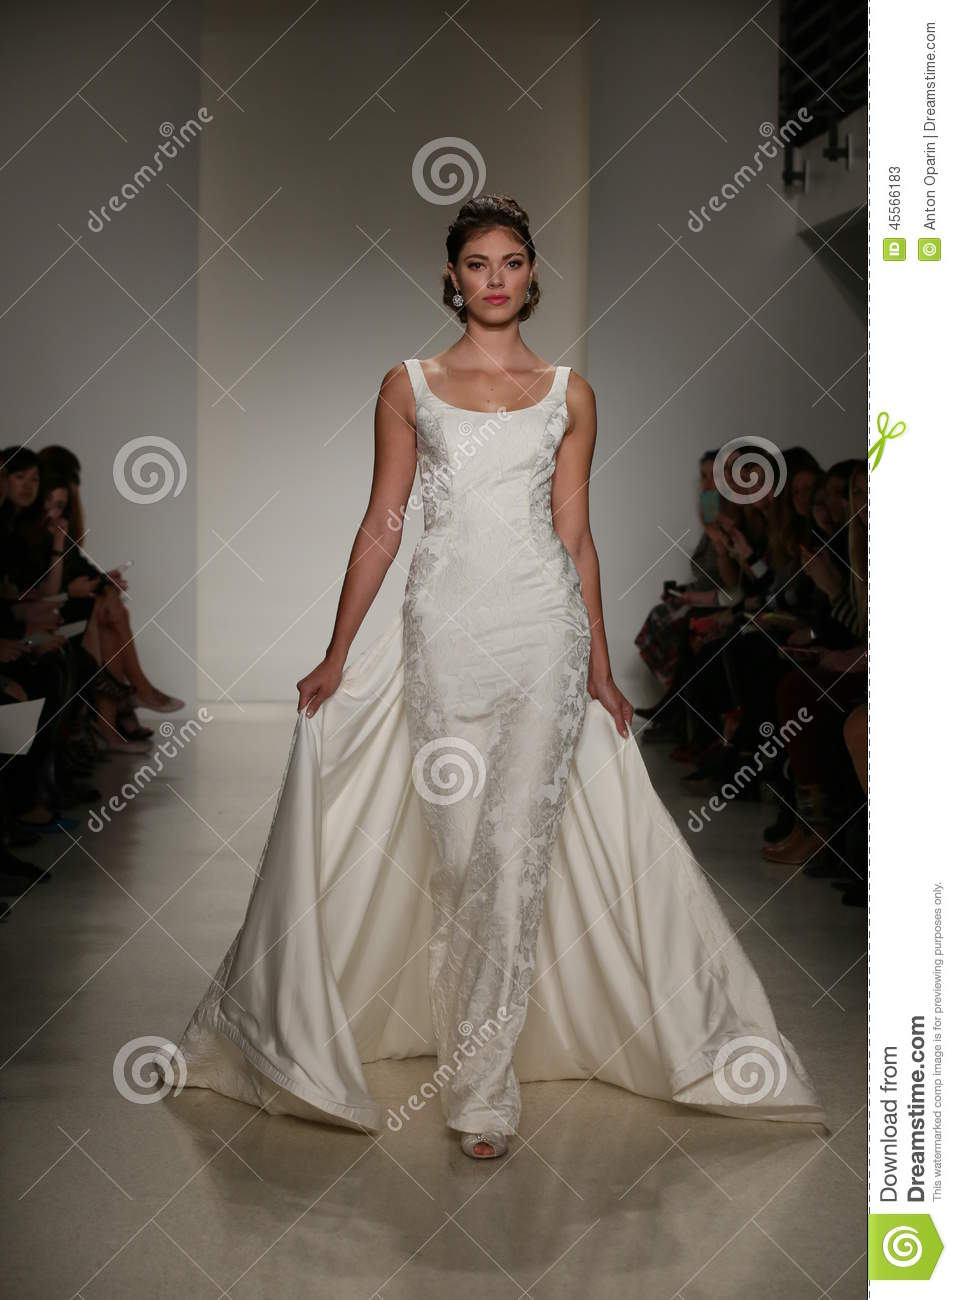 NEW YORK, NY - OCTOBER 10: A model walks the runway during the Anne Barge Fall 2015 Bridal Collection Show